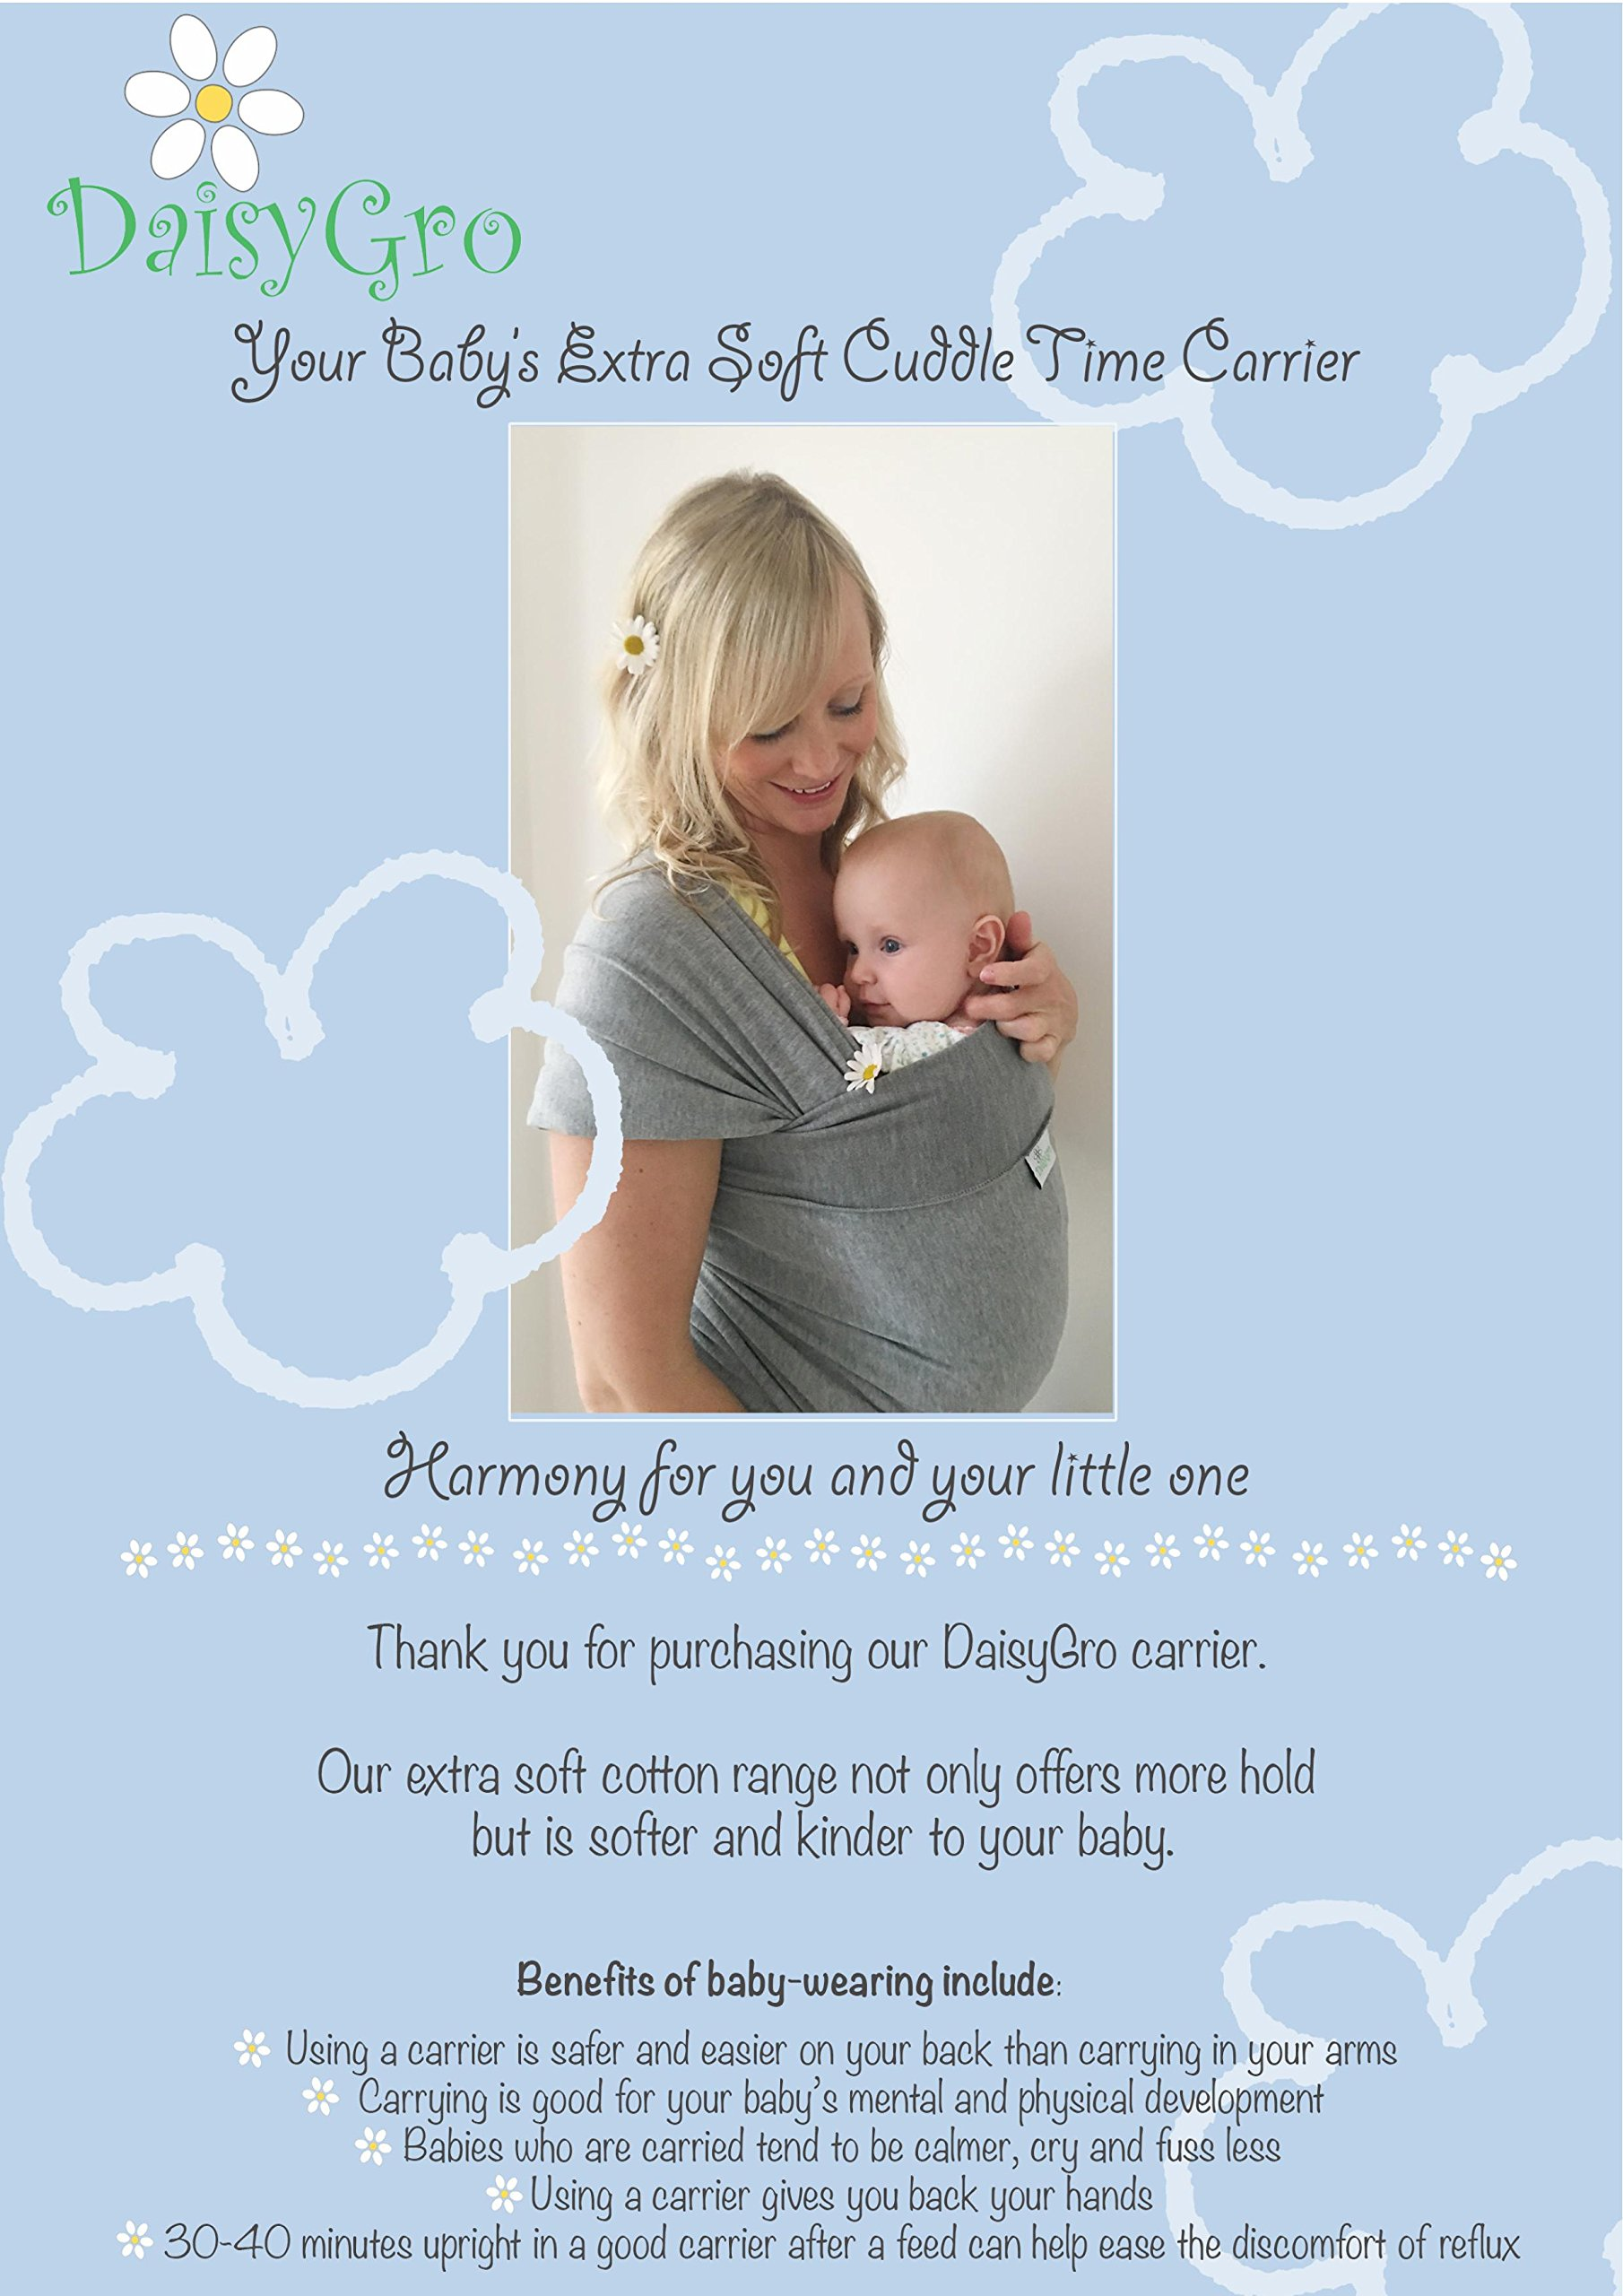 •Sale!• DaisyGro® Premium Baby Sling Carrier | 2 Size Options | Baby Wrap | Newborns, Infants, Toddlers | Breastfeeding Cover | Breathable Soft Cotton | Grey | Ideal Gift DaisyGro A SECURE BOND created making baby happy and content close to your warm body where he/she can hear your heartbeat. FREE HANDS for everyday tasks around the home or out in the world. Also a great idea for walking your way back to your PRE-PREGNANCY FITNESS level without the need to find childcare! All this whilst your baby is warm and snug close to you. 2 SIZE OPTIONS and EASY TO USE versatile design with no straps or buckles - comfortable for both baby and you! Researched and manufactured to the perfect length. Can be used for different holds. Perfect for breastfeeding. Safe for newborns, babies and toddlers up to 35 lbs. Comes in a handy bag so the wrap can be stored away when not in use. 3